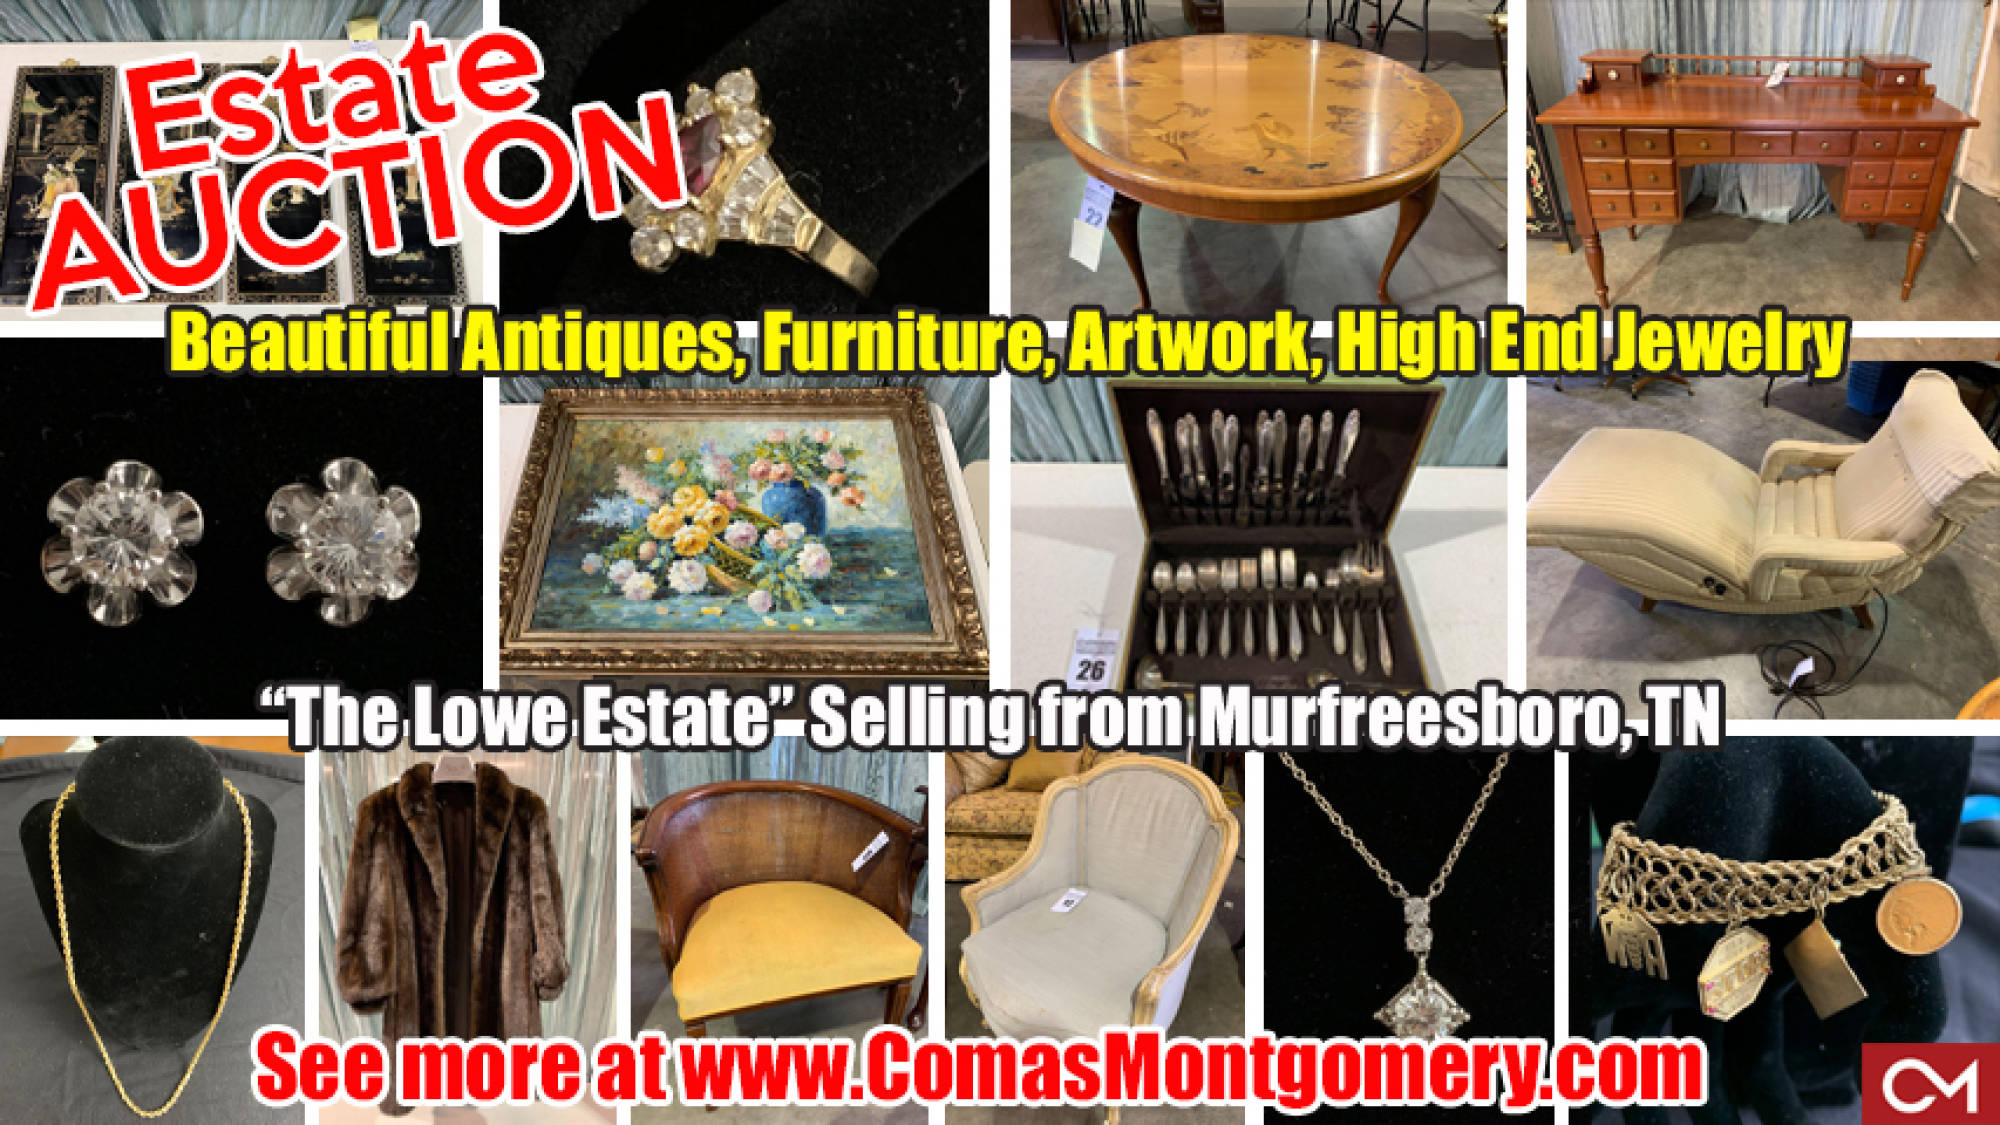 Furniture, Artwork, Jewelry, Estate, Sale, Auction, Bid, Online, Murfreesboro, Comas, Montgomery